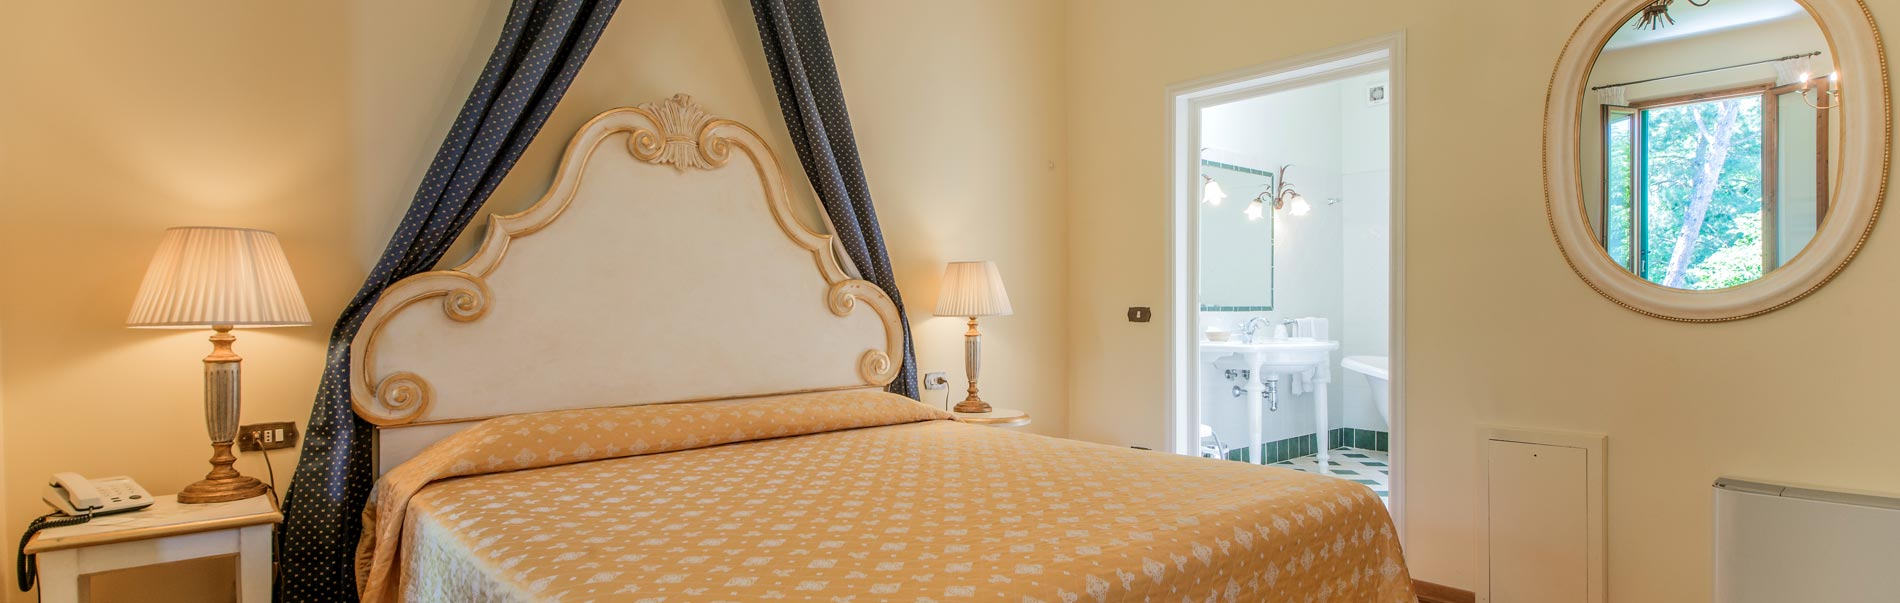 Residence Michelangiolo, luxury quiet rooms with cooking facilities and parking in Florence